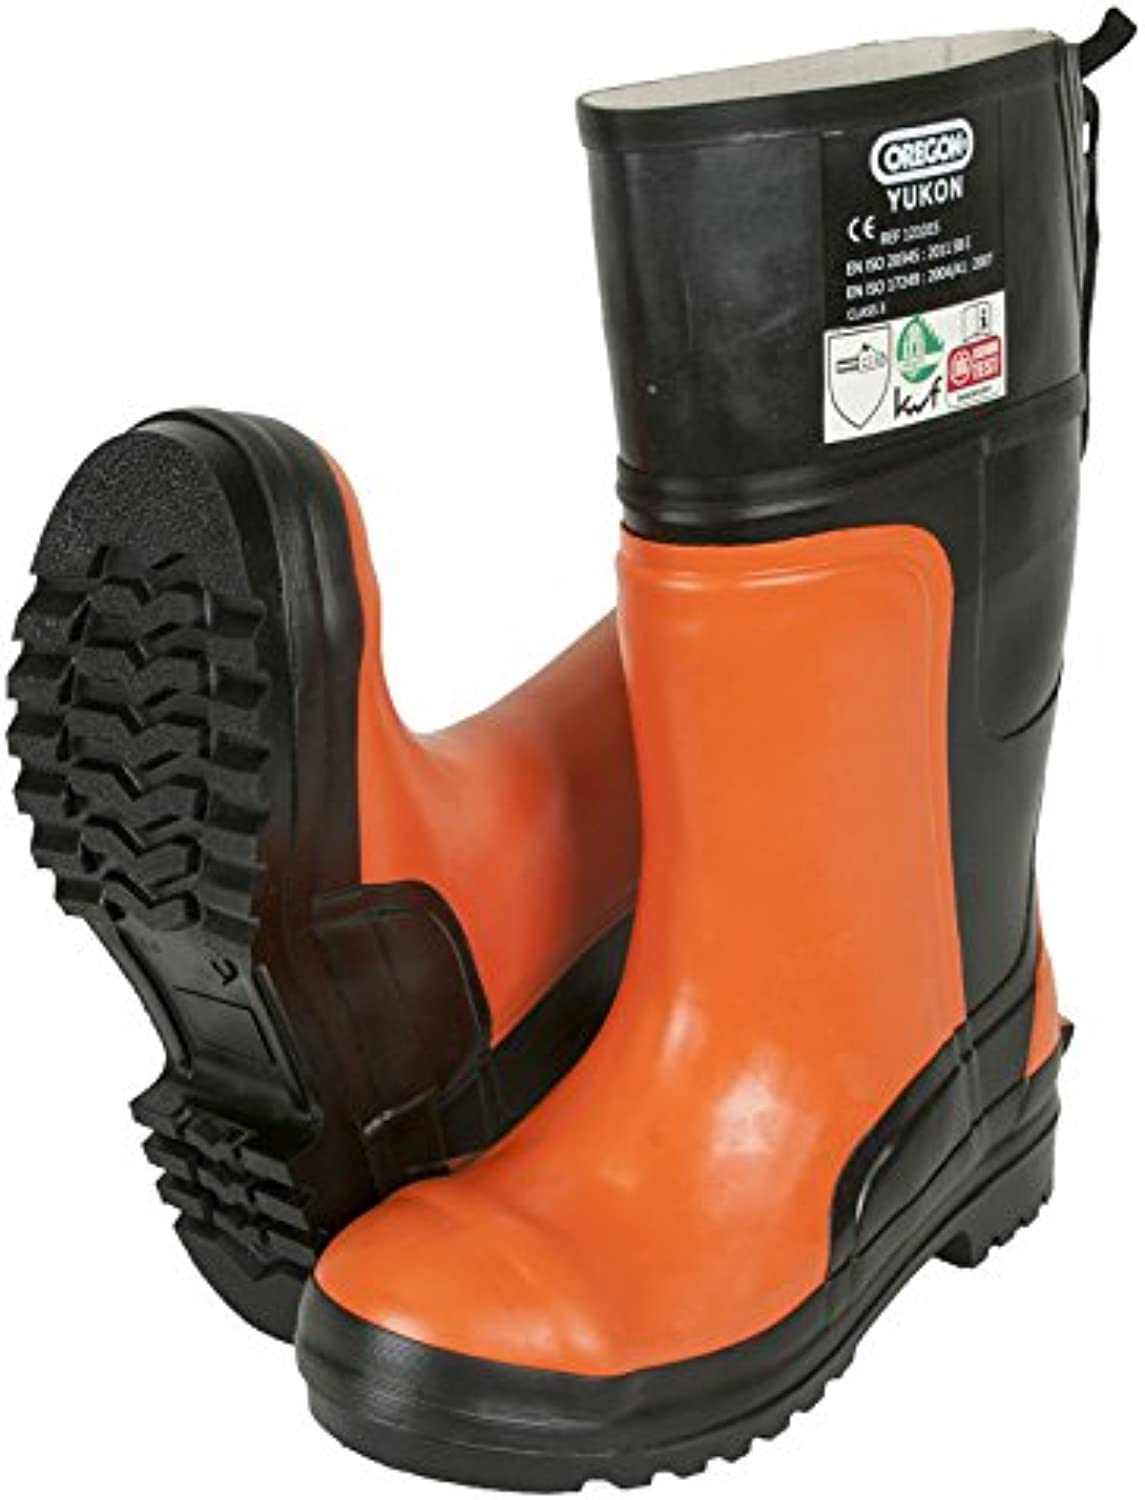 Oregon Yukon 295385 47 Chainsaw Predective Rubber Safety Boot, 47